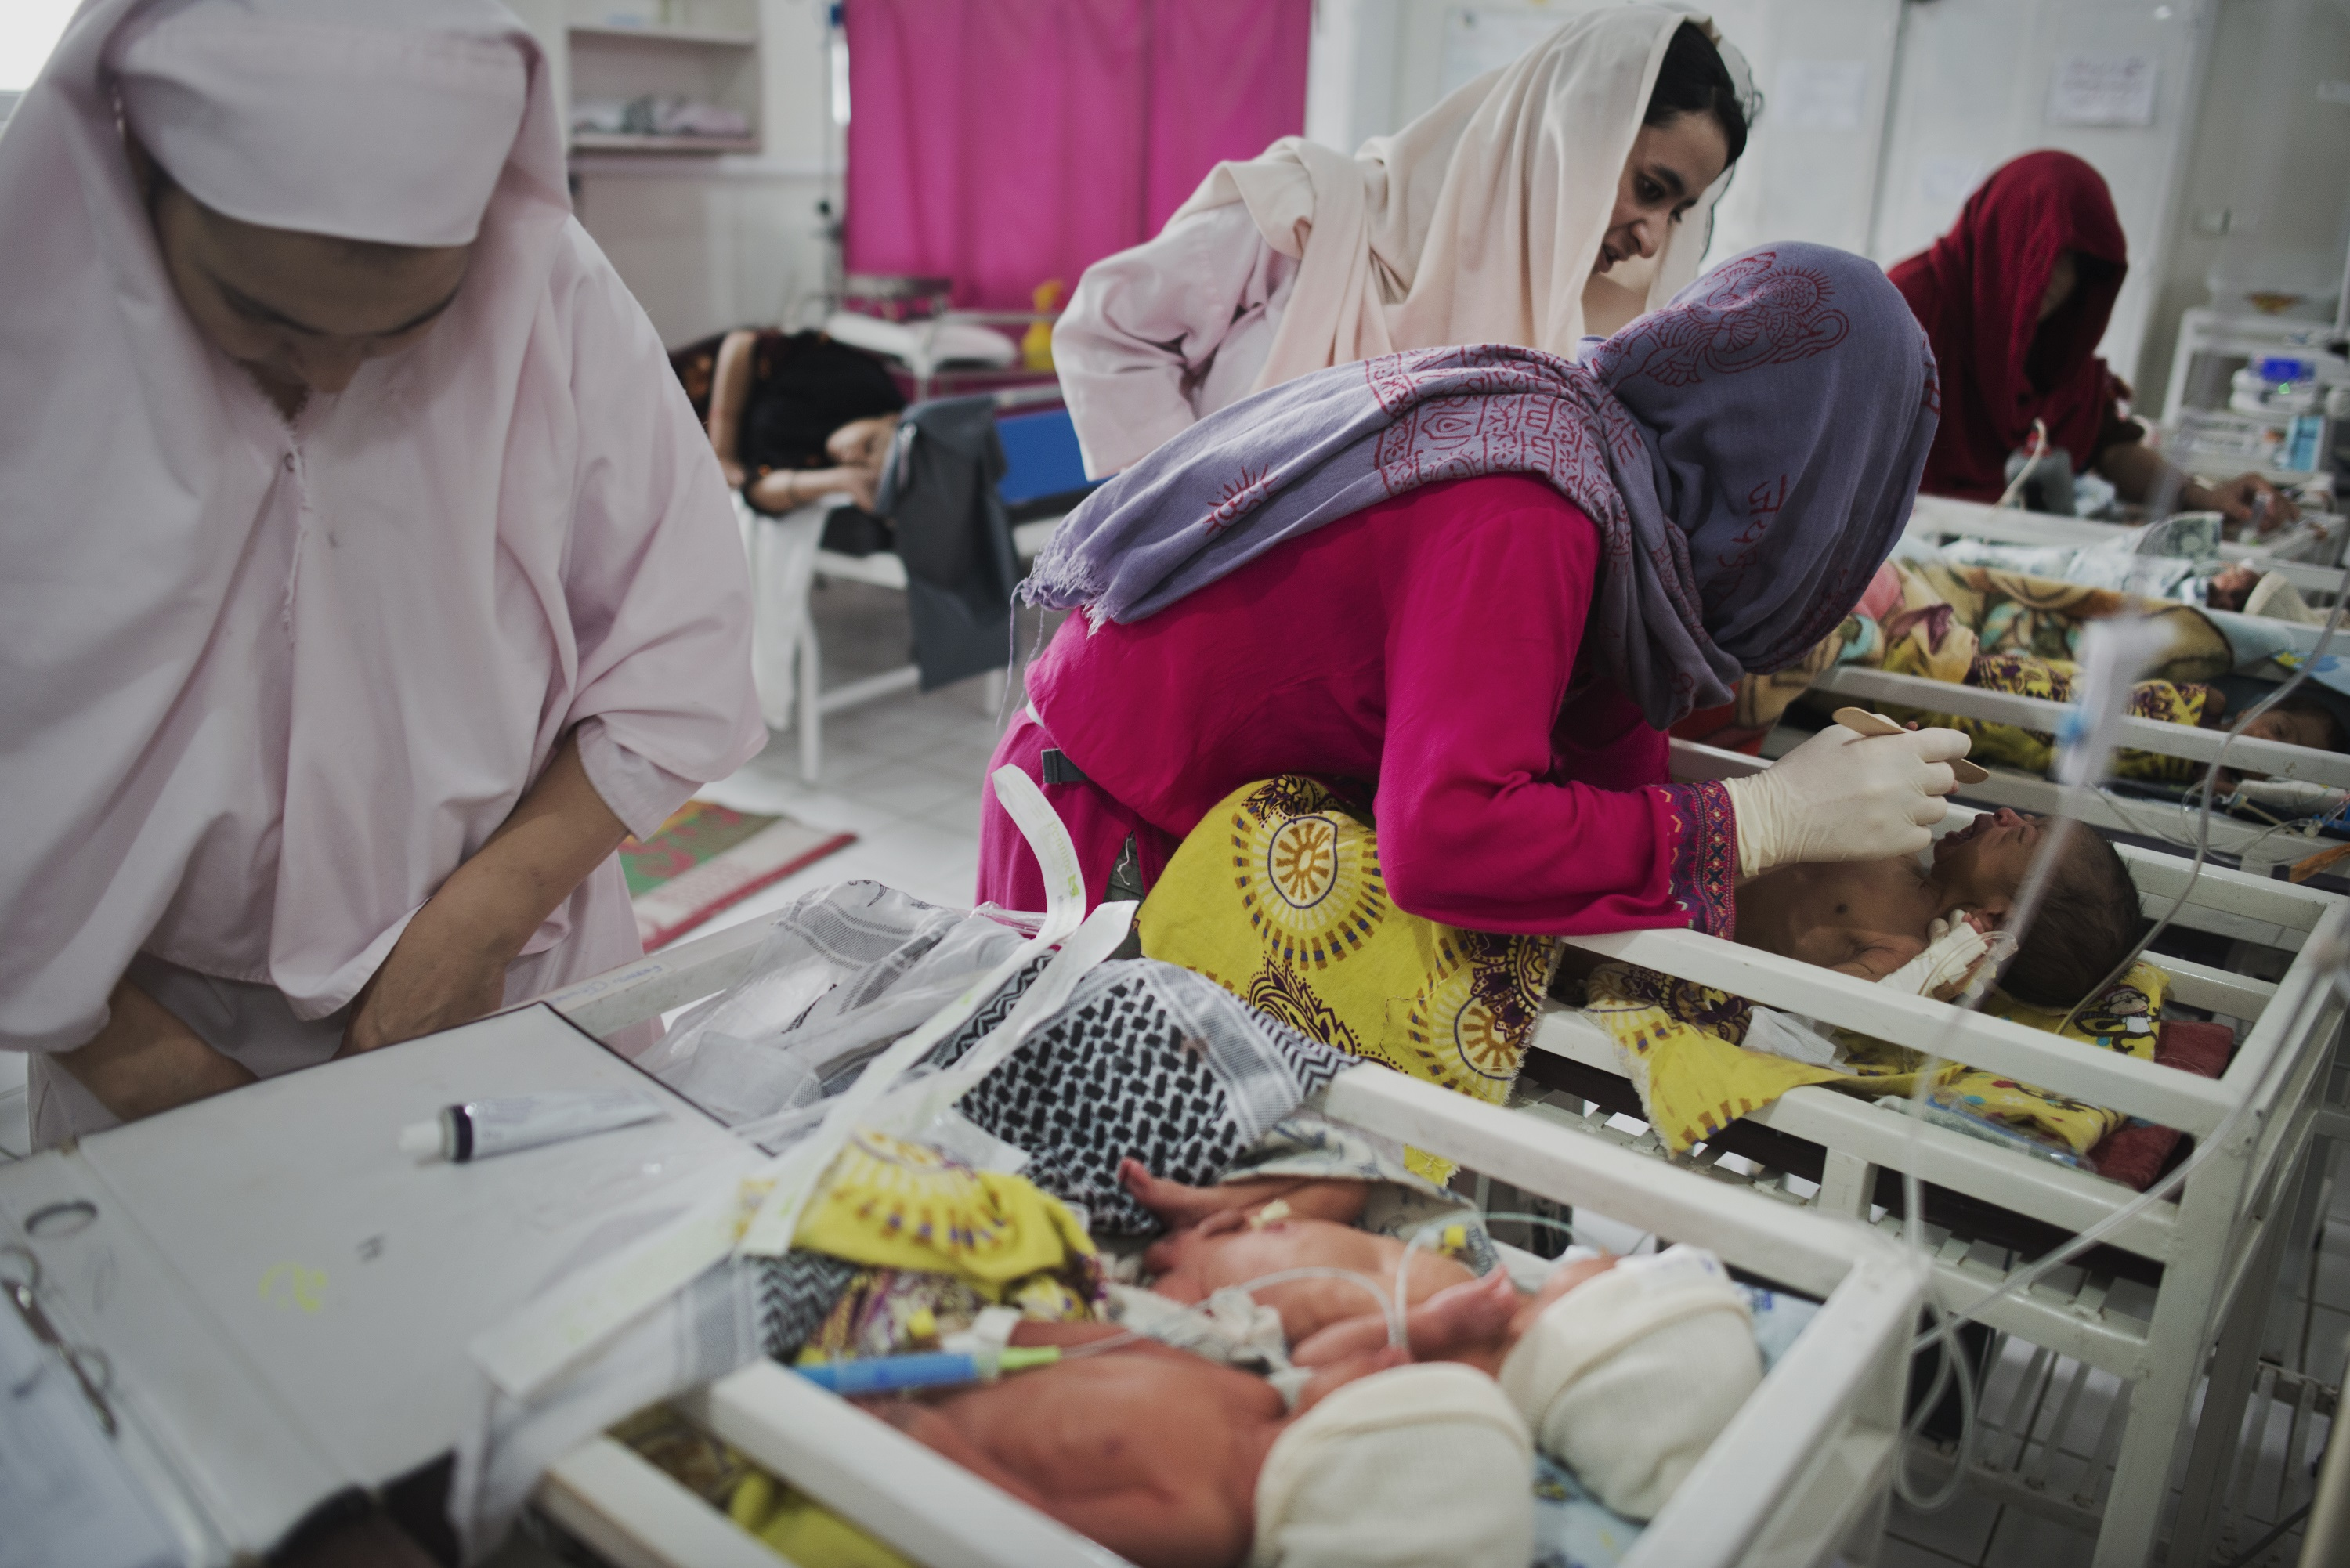 A newborn is examined by Pediatric Nurse Isabelle Arnould and midwives in the neonatal ward of the MSF Maternity Hospital in Khost, Afghanistan.